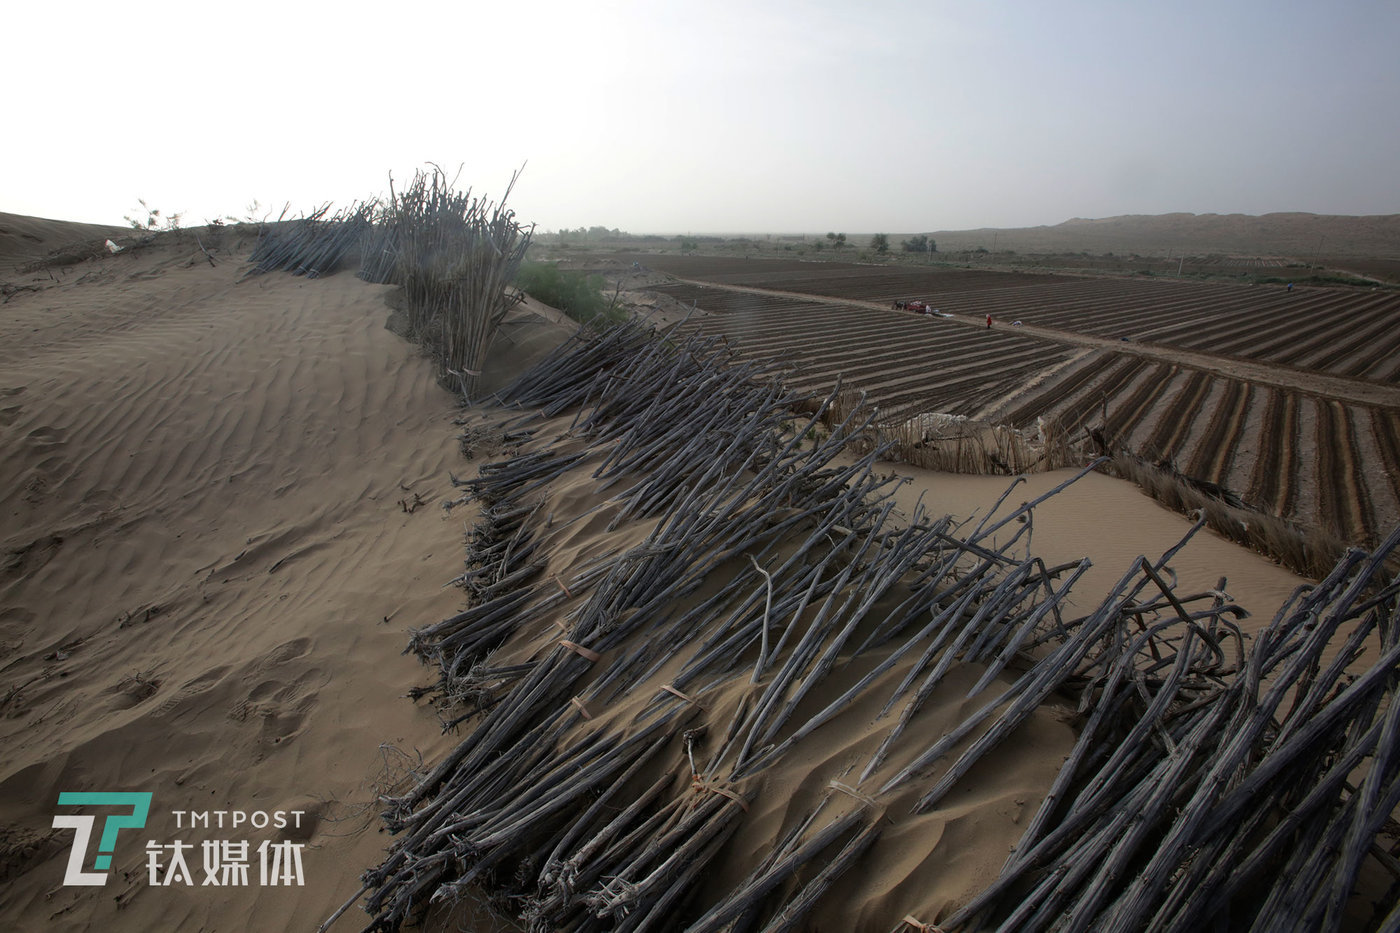 To prevent desertification, honeydew farmers lay gathered sunflower straws on the dunes.